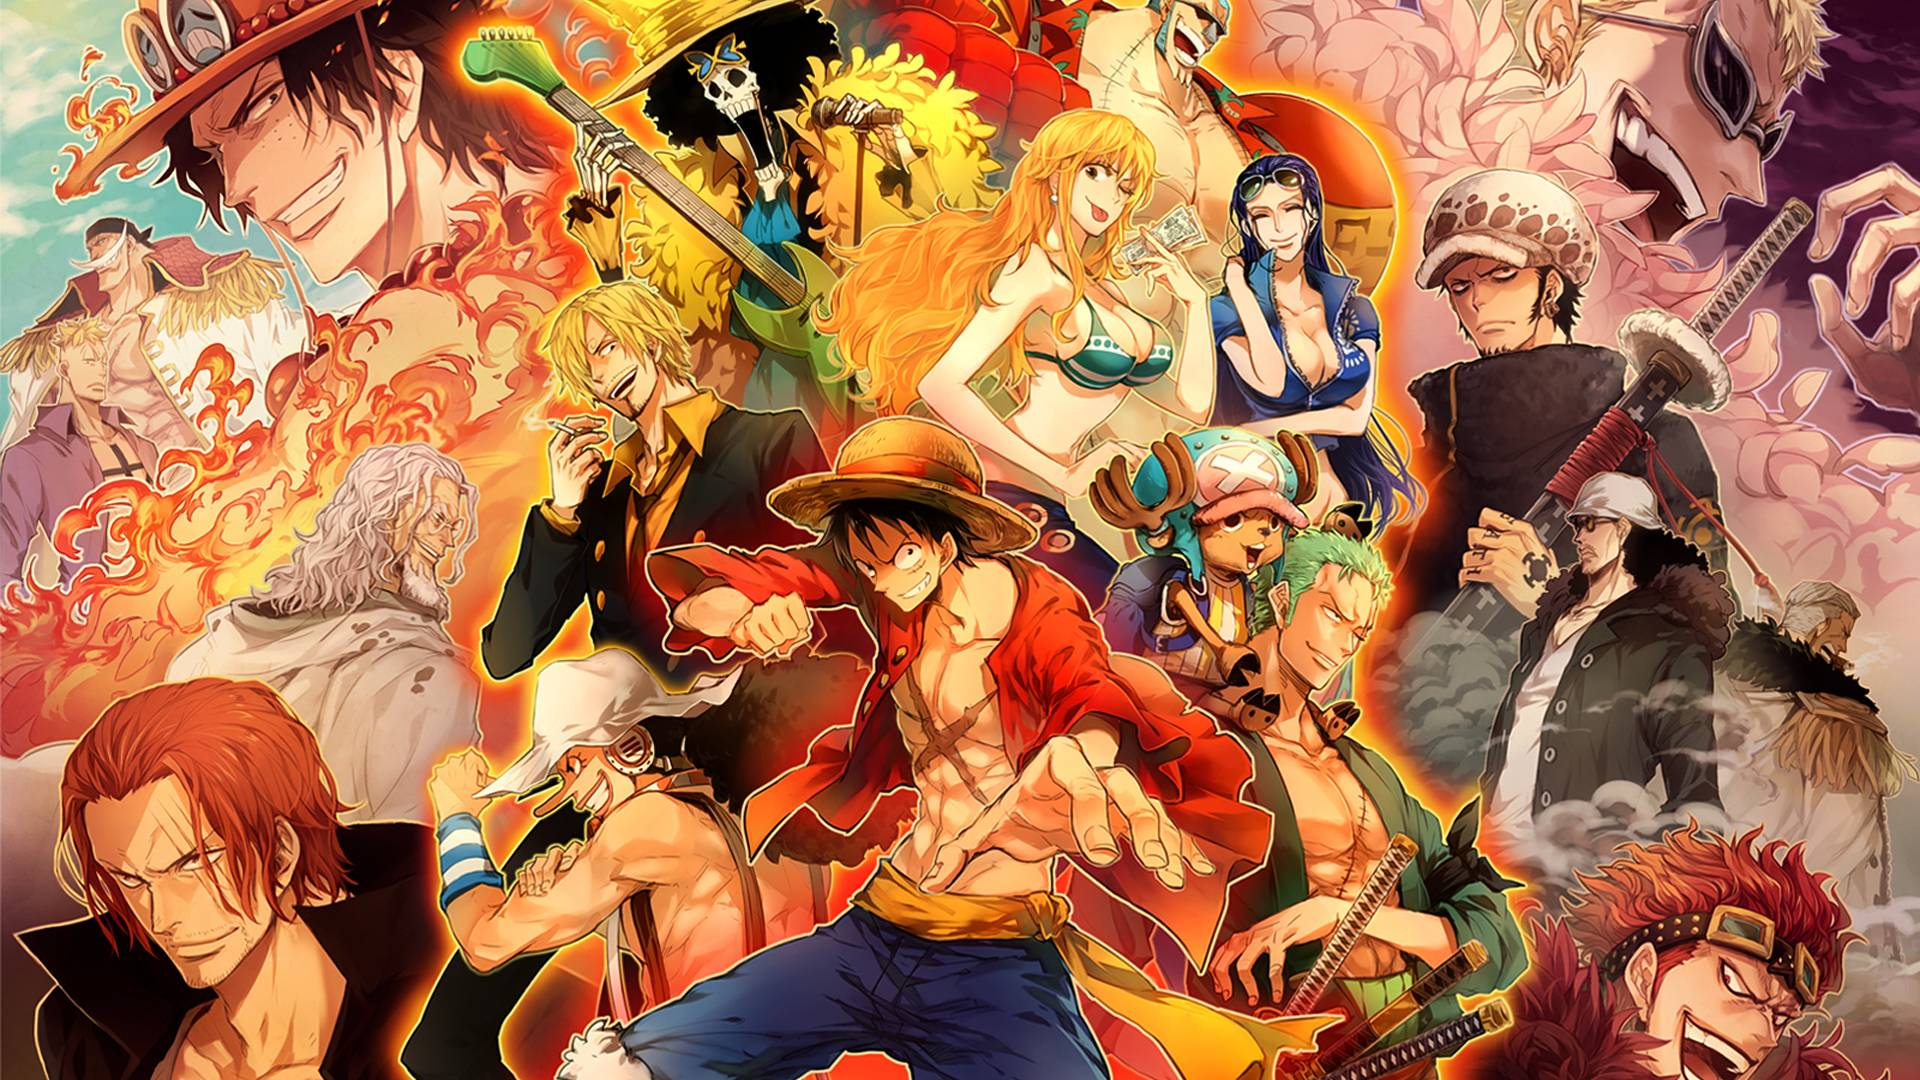 Wallpaper Hd Free Desktop Background One Piece